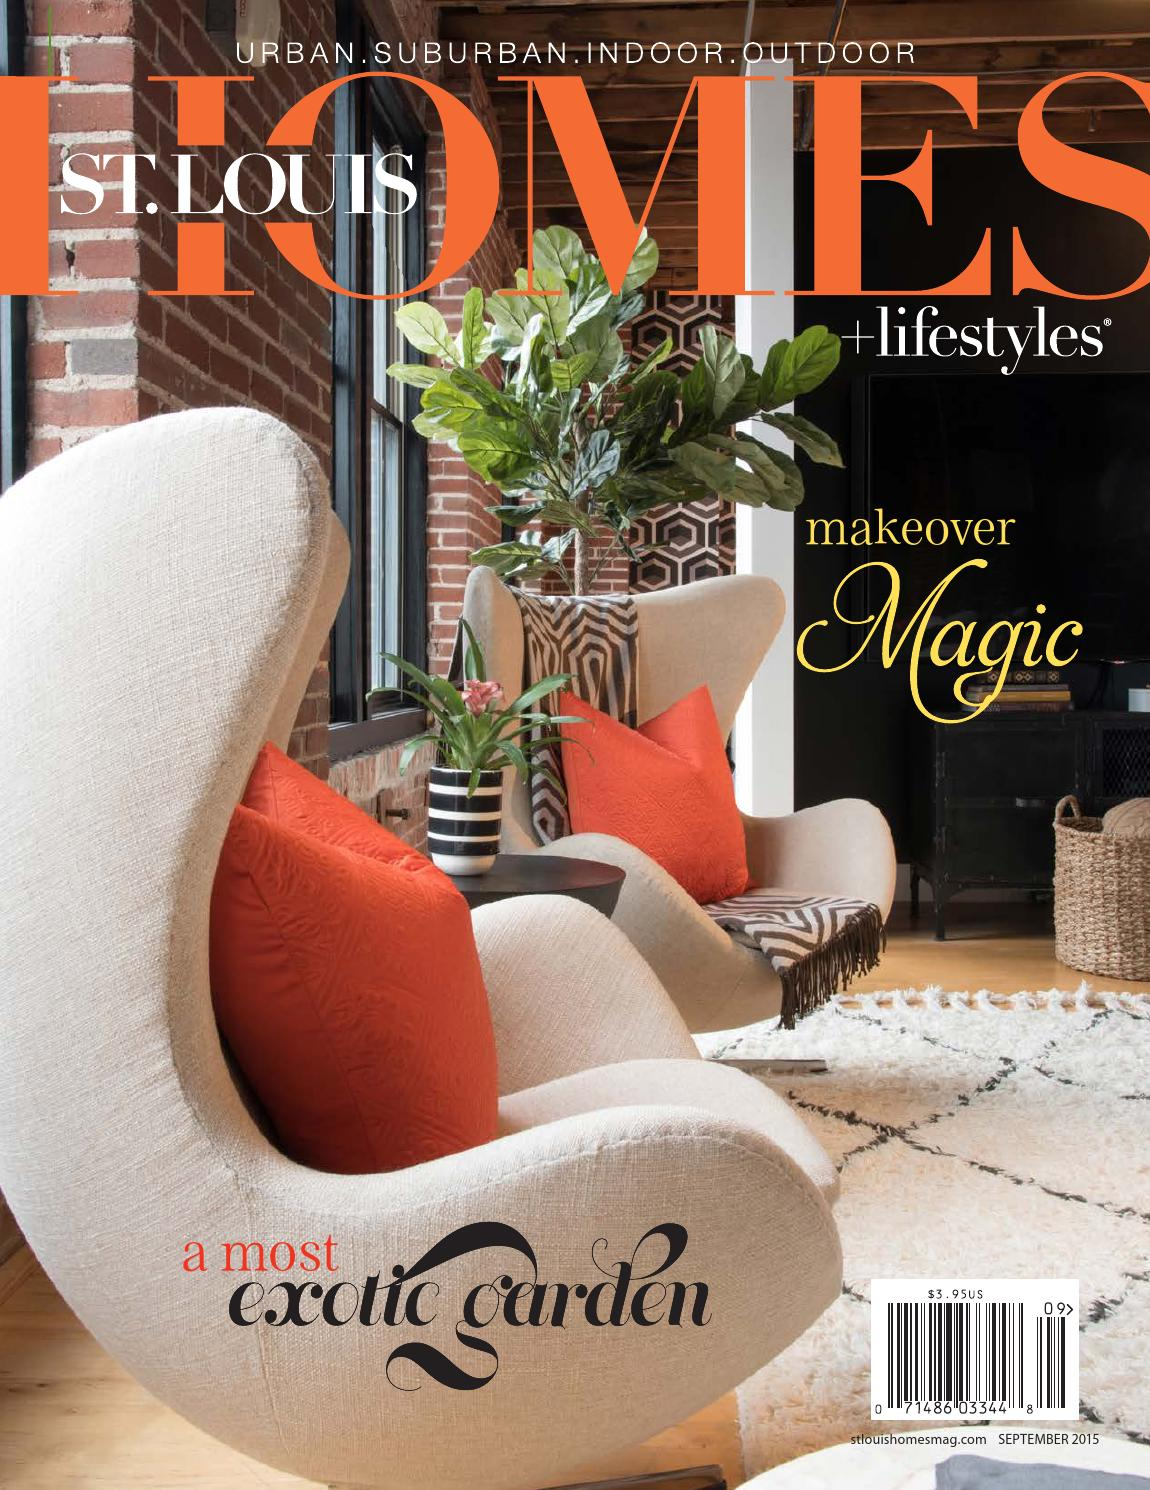 September 2015 by St. Louis Homes & Lifestyles - issuu